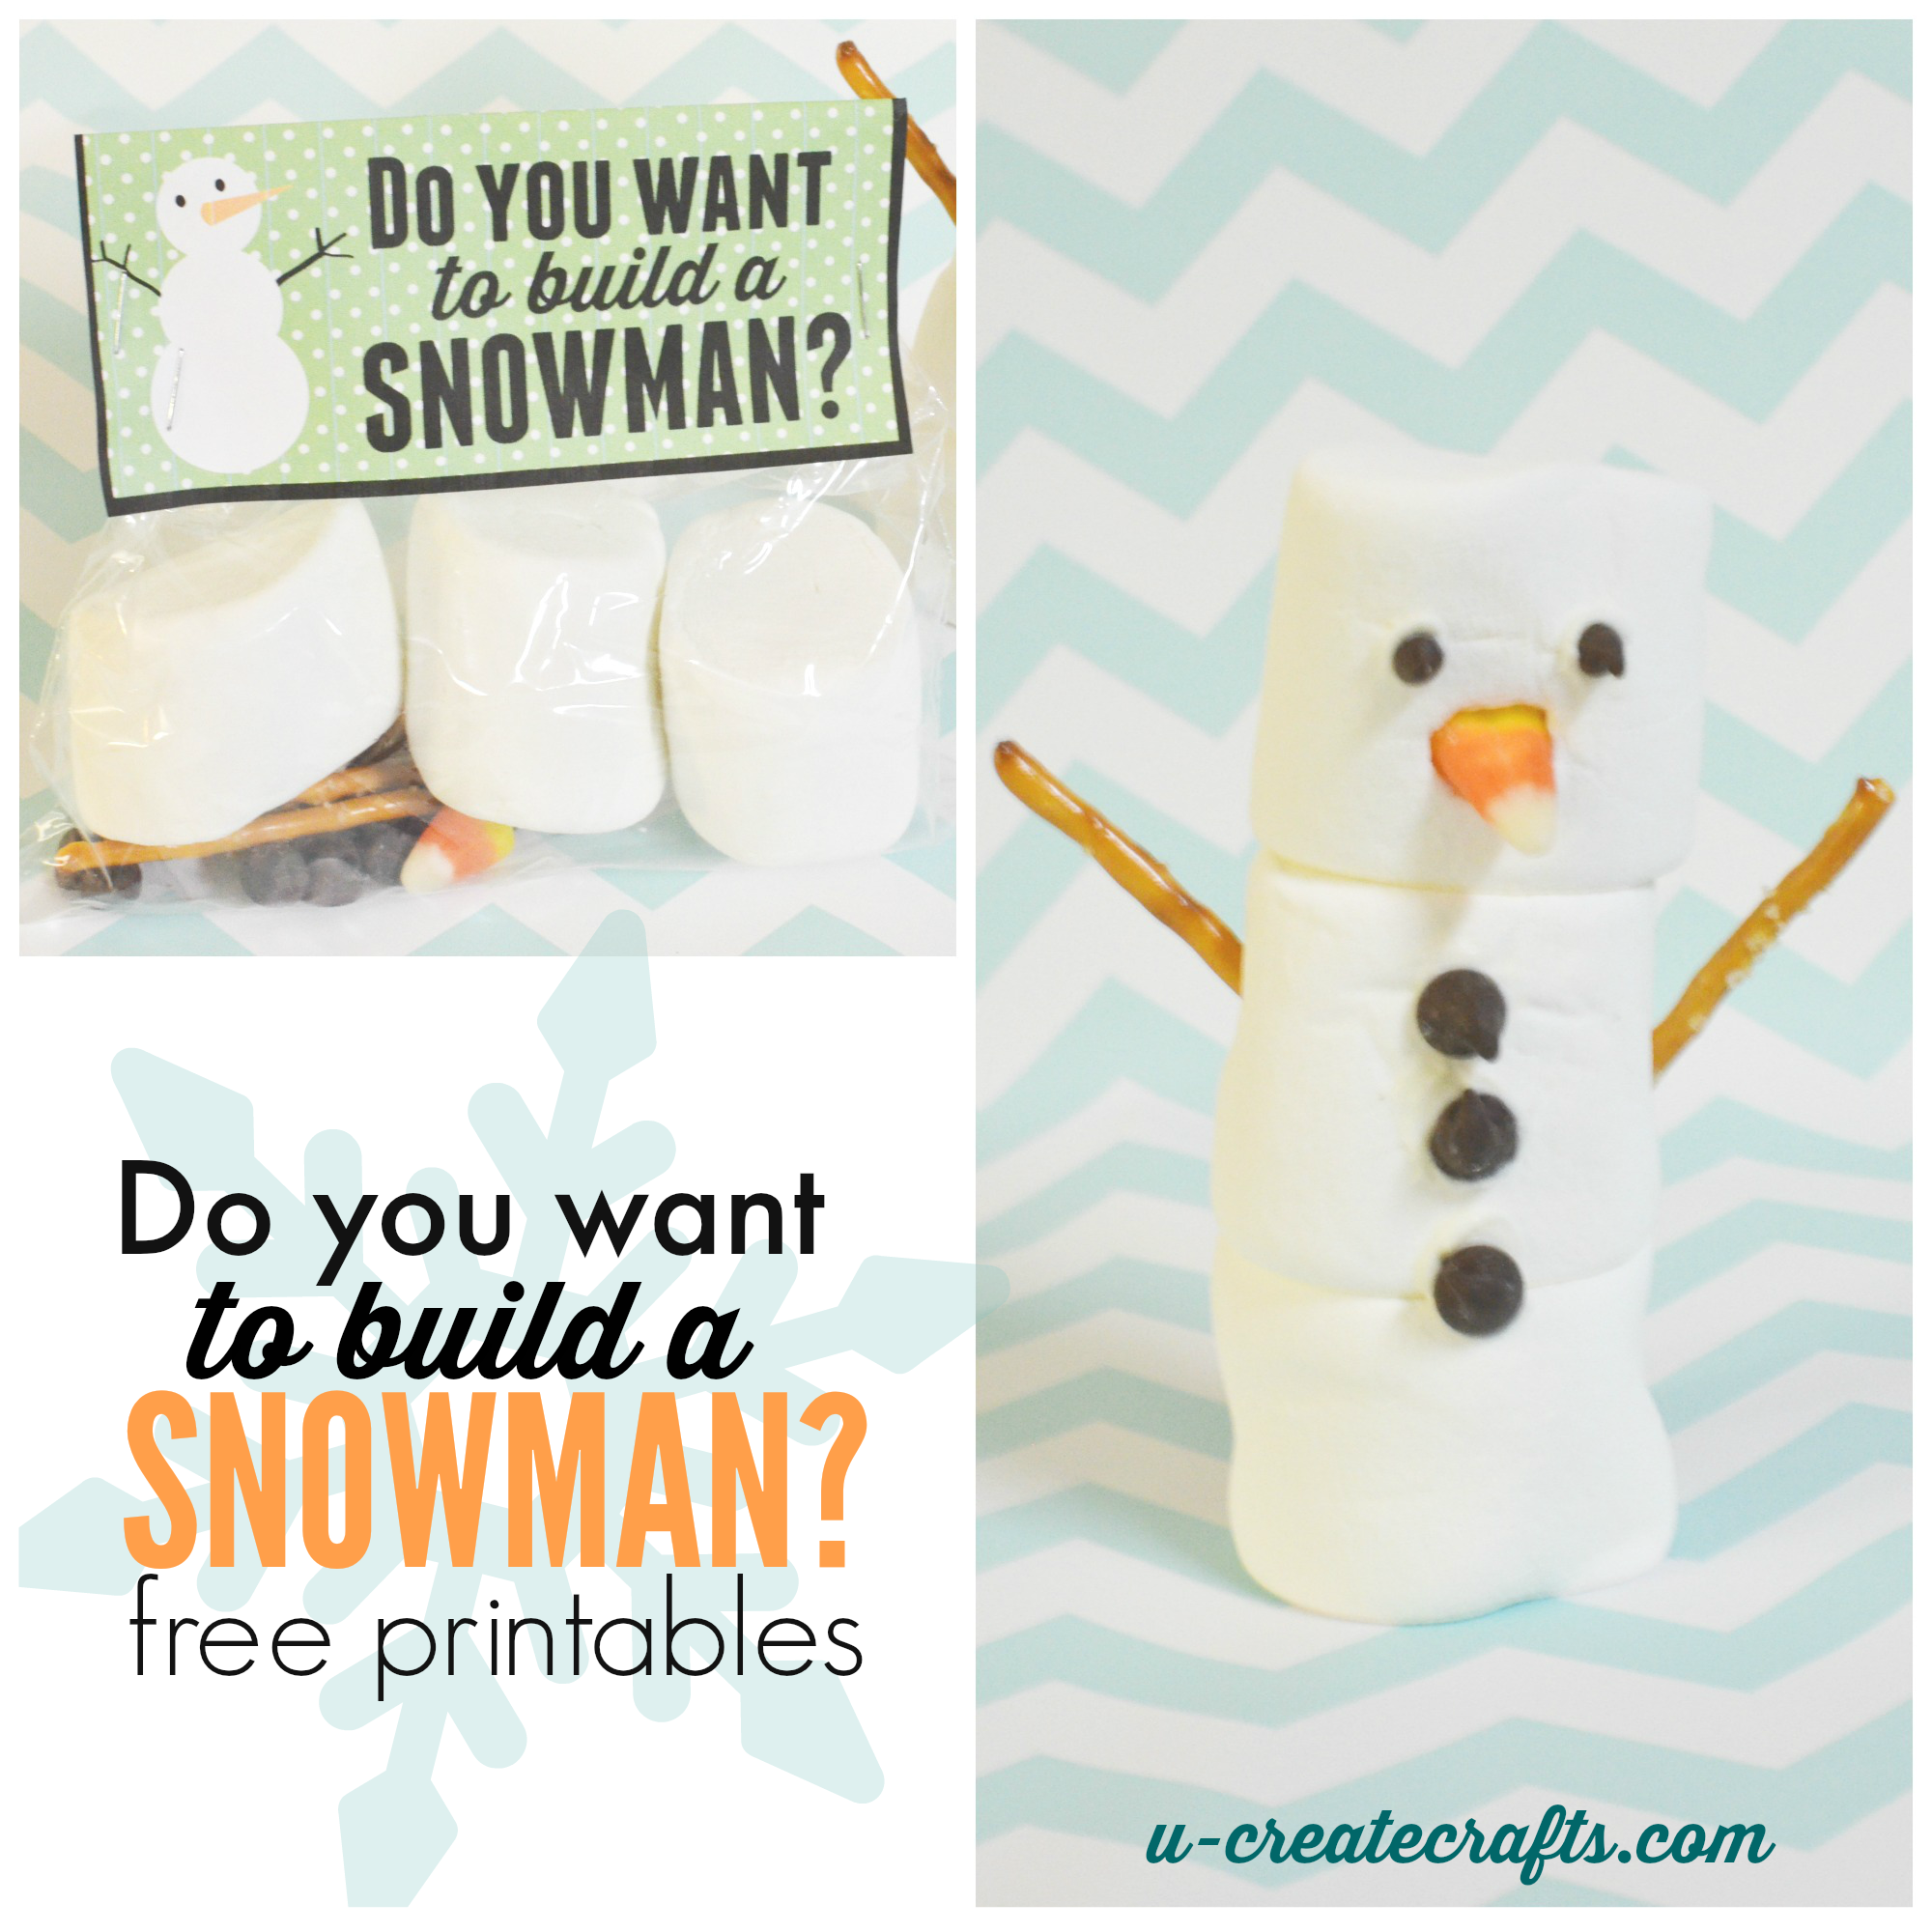 photo relating to Do You Want to Build a Snowman Printable referred to as Totally free Printable \